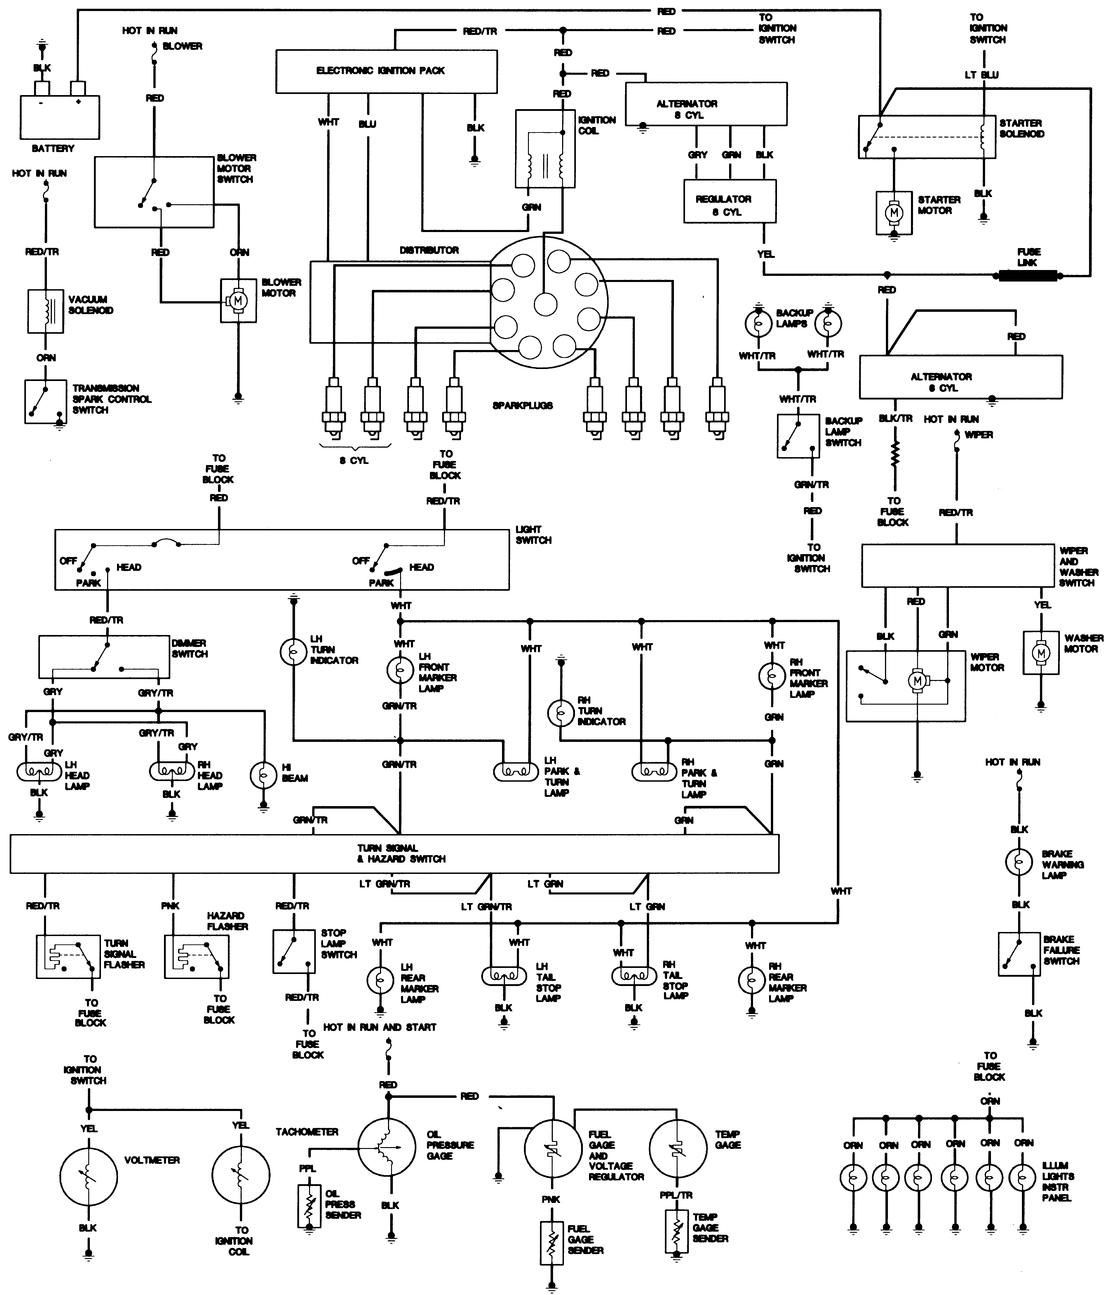 Wiring Diagram 1979 Jeep Cj7 Library Alternator 1980 Cj5 Furthermore Tachometer Rh Pinterest Co Uk